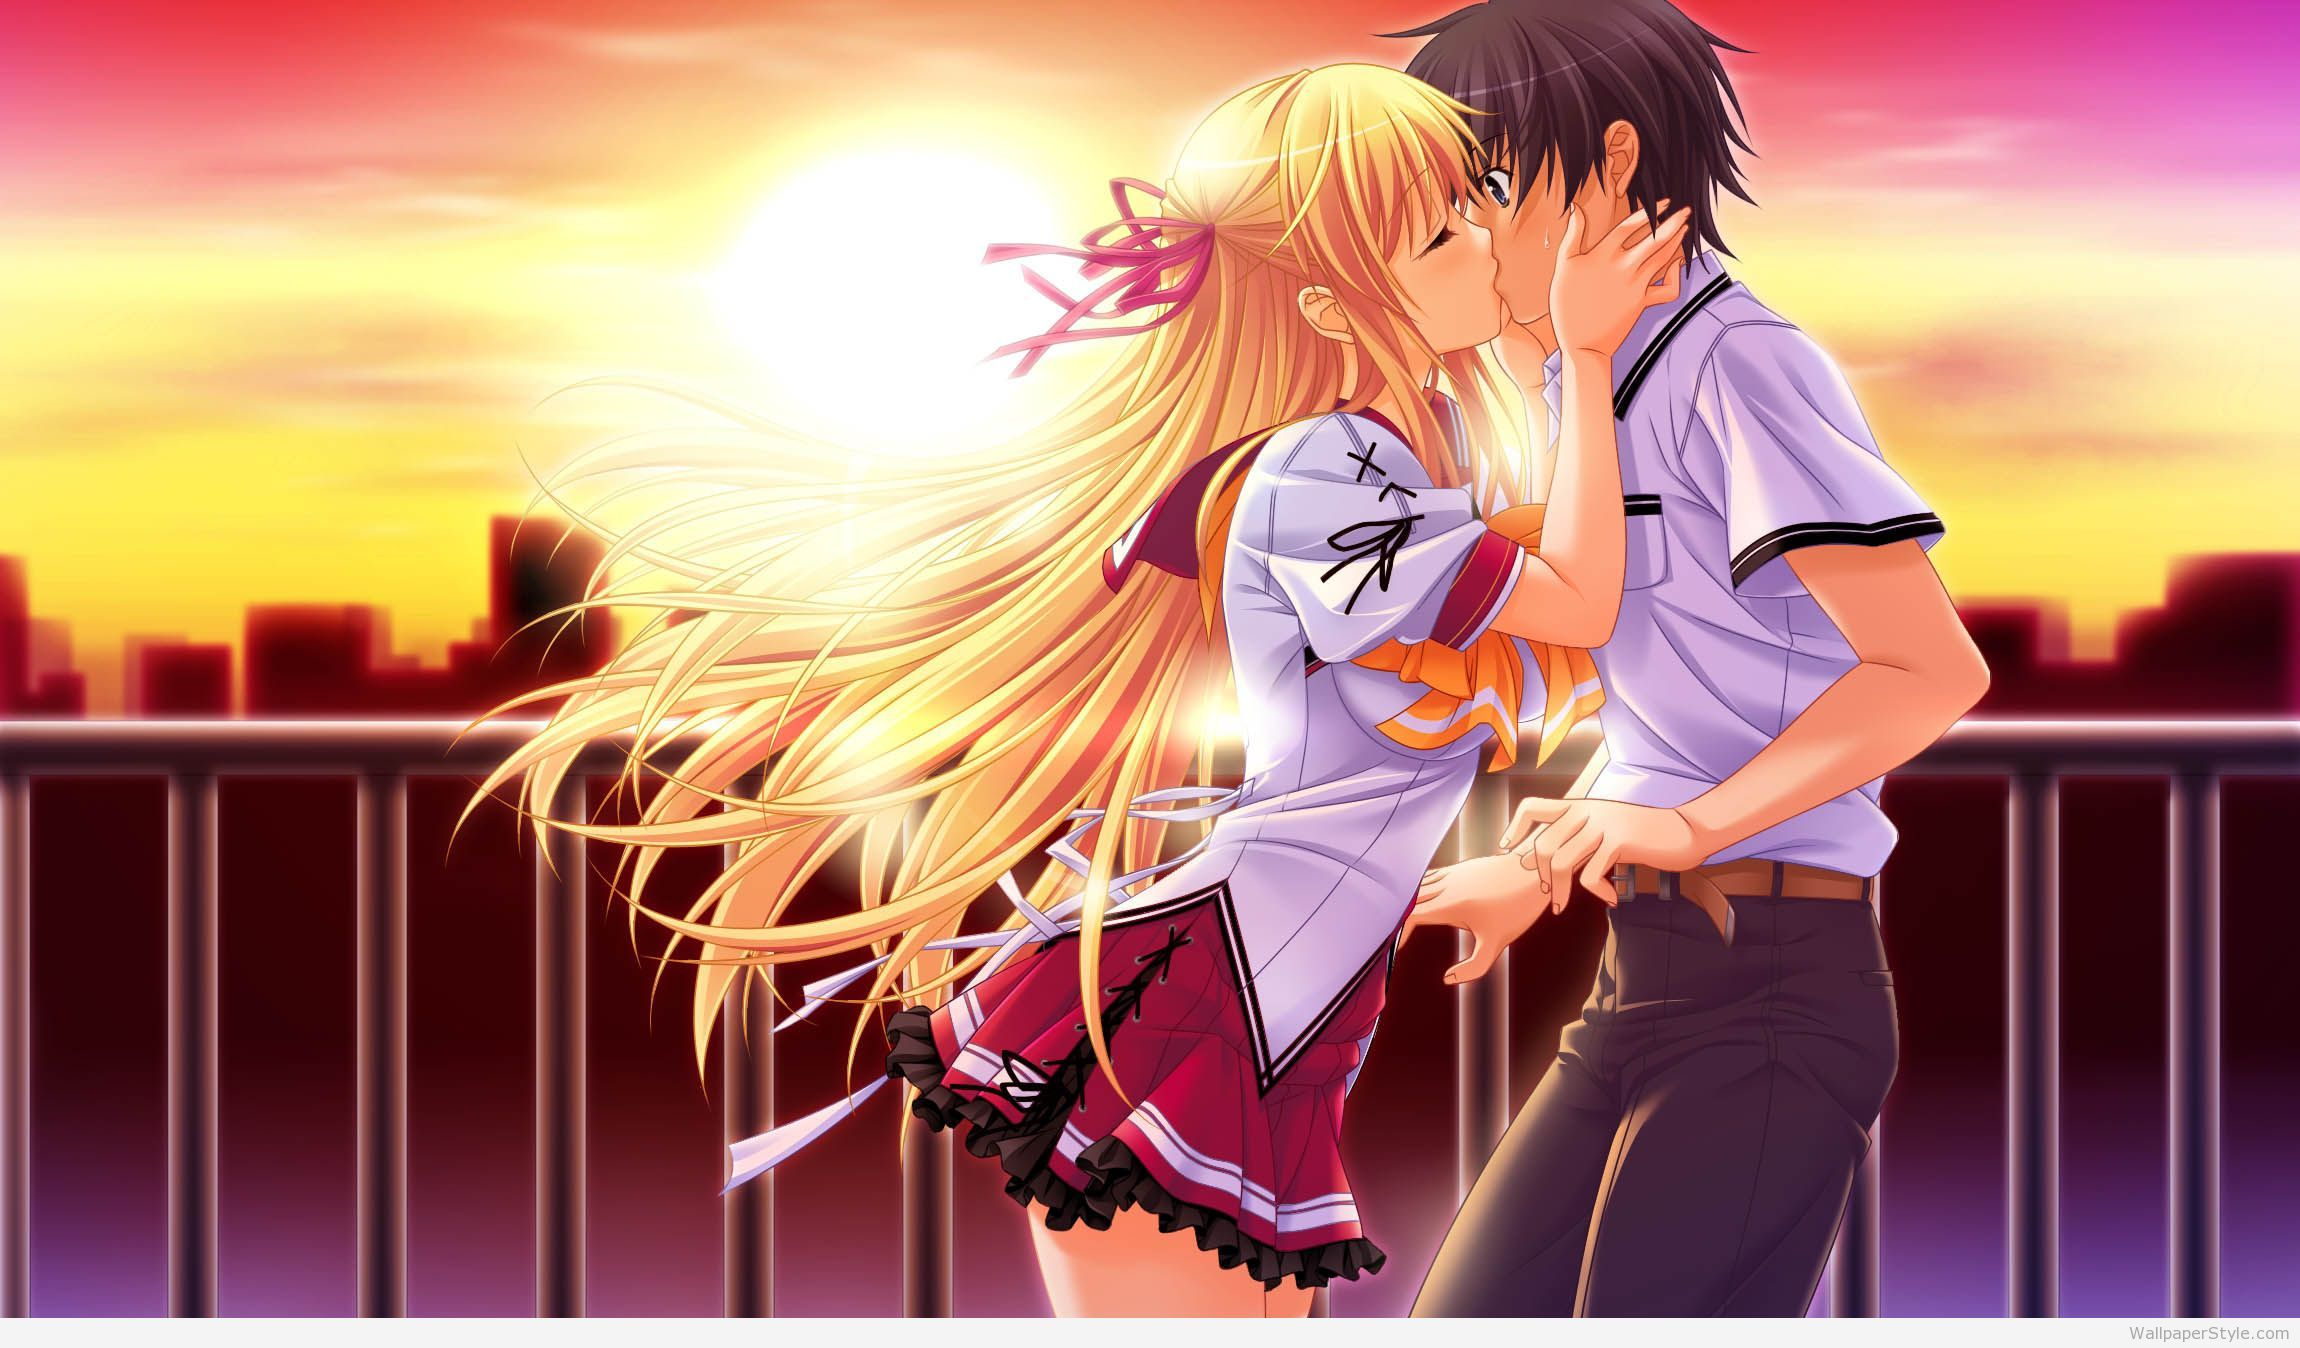 Anime Kiss Wallpapers Wallpaperstyle Com Anime Kiss Wallpapers  Anime Wallpapers Anime Wallpapers